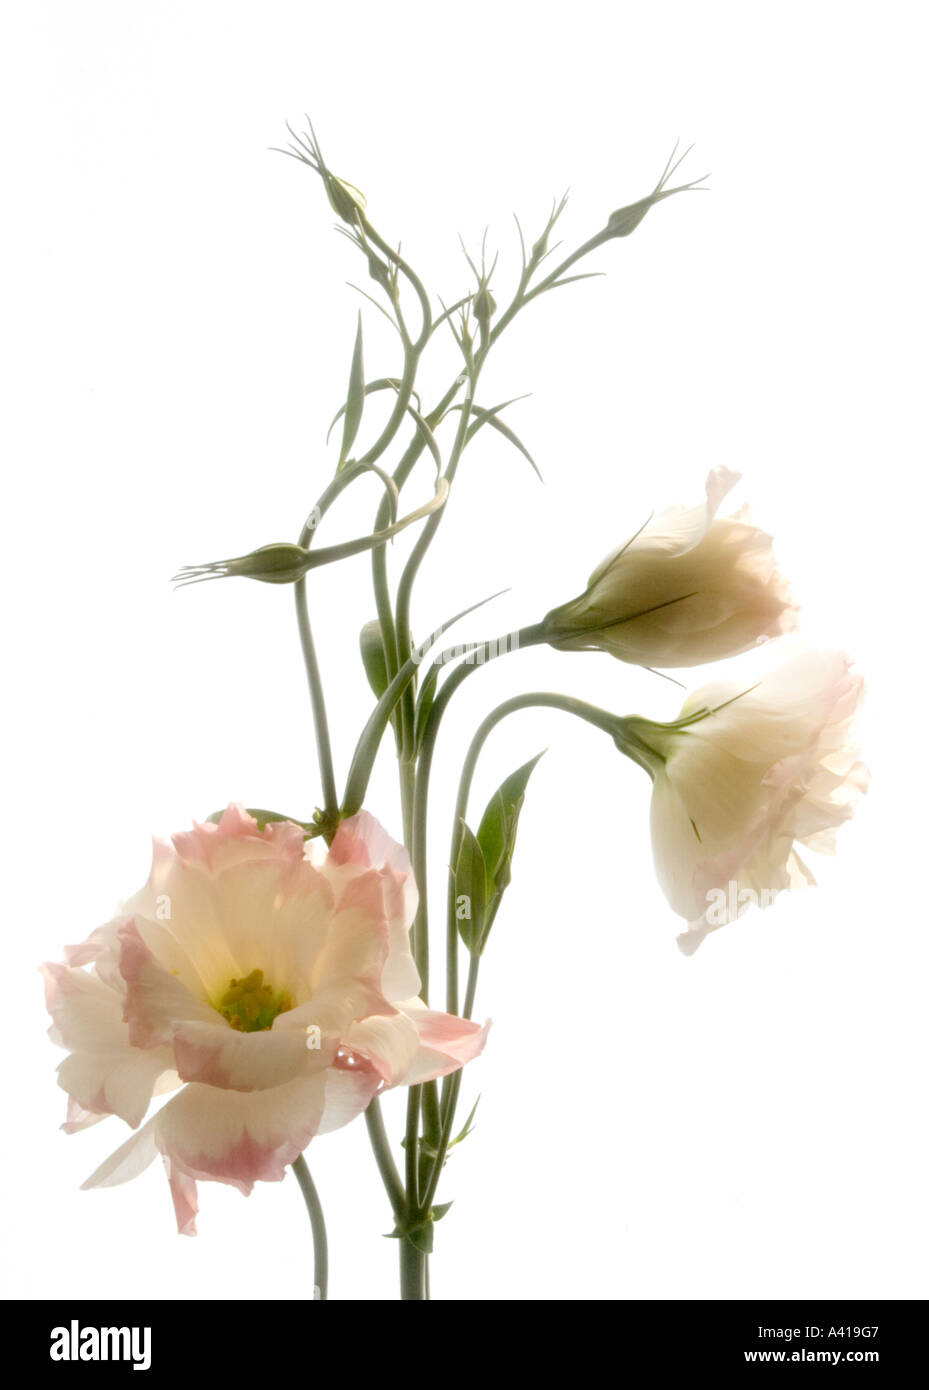 Stem of a Lisianthus Flower; Pale Pink Edged White Petals - Formal Studio Shot - High Key Against White Background - Stock Image